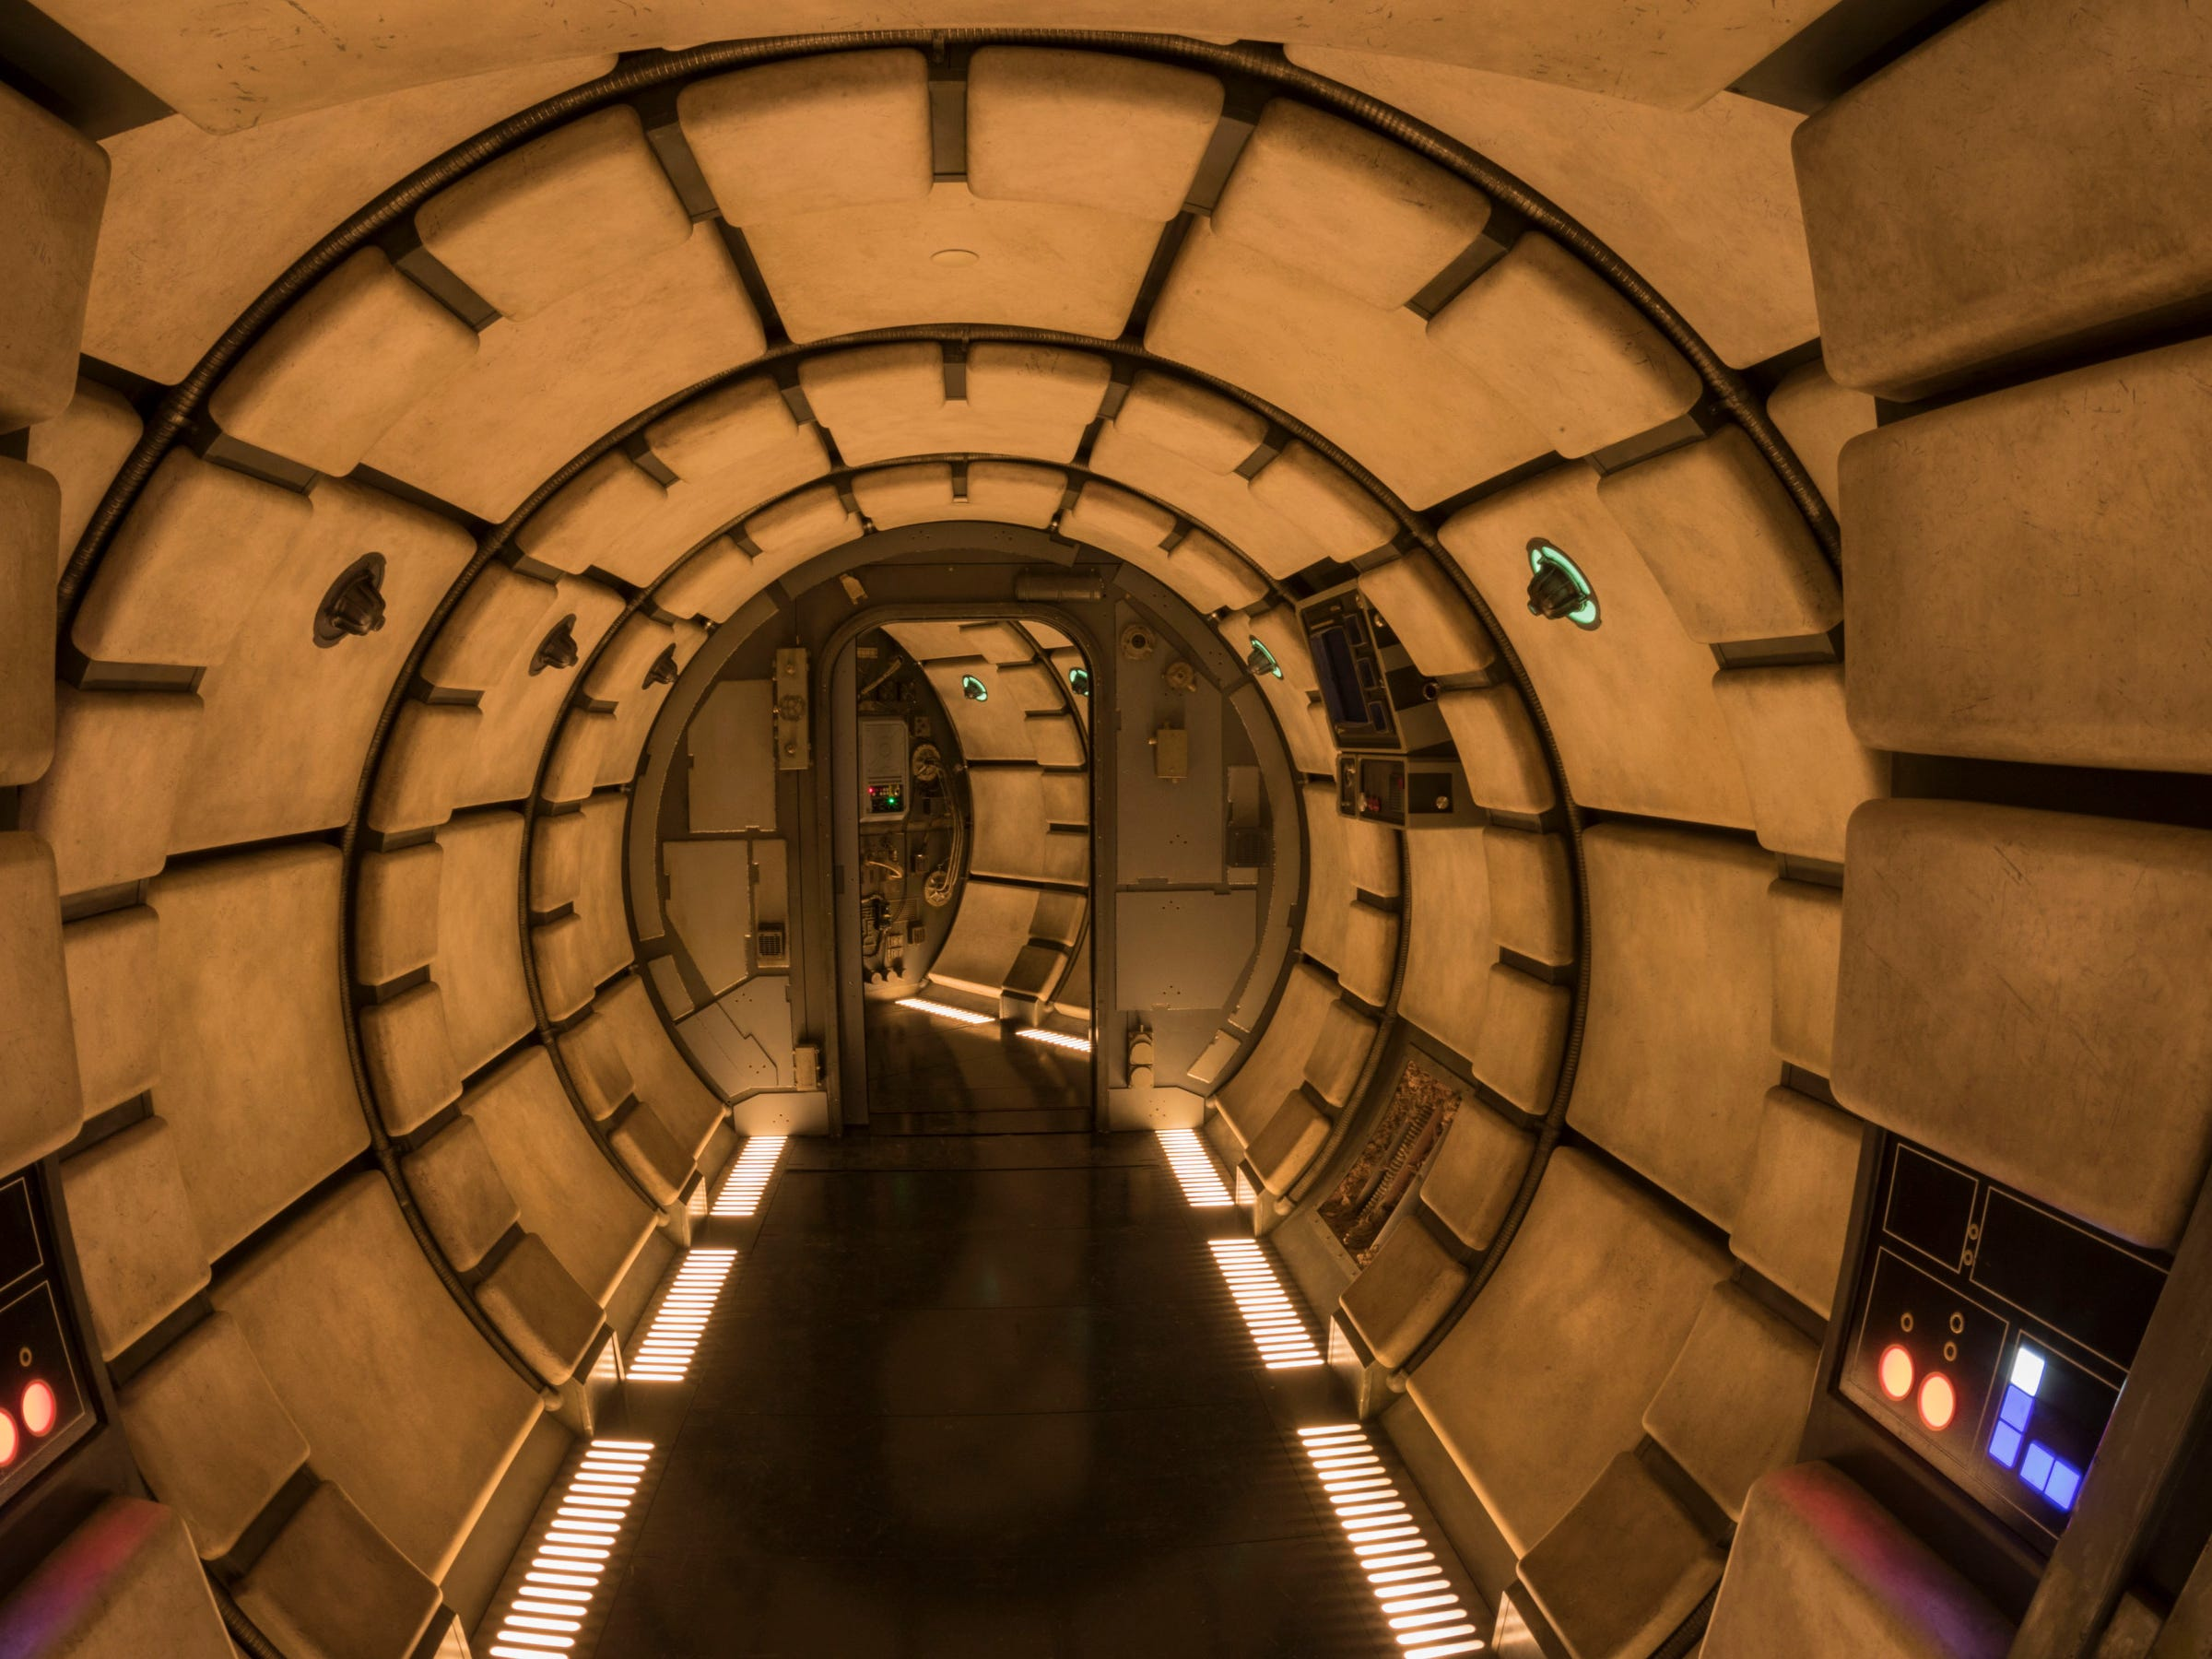 Millennium Falcon: Smugglers Run in Star Wars: Galaxy's Edge will let Disney guests walk the hallways and experience other memorable areas of the fastest ship in the galaxy.